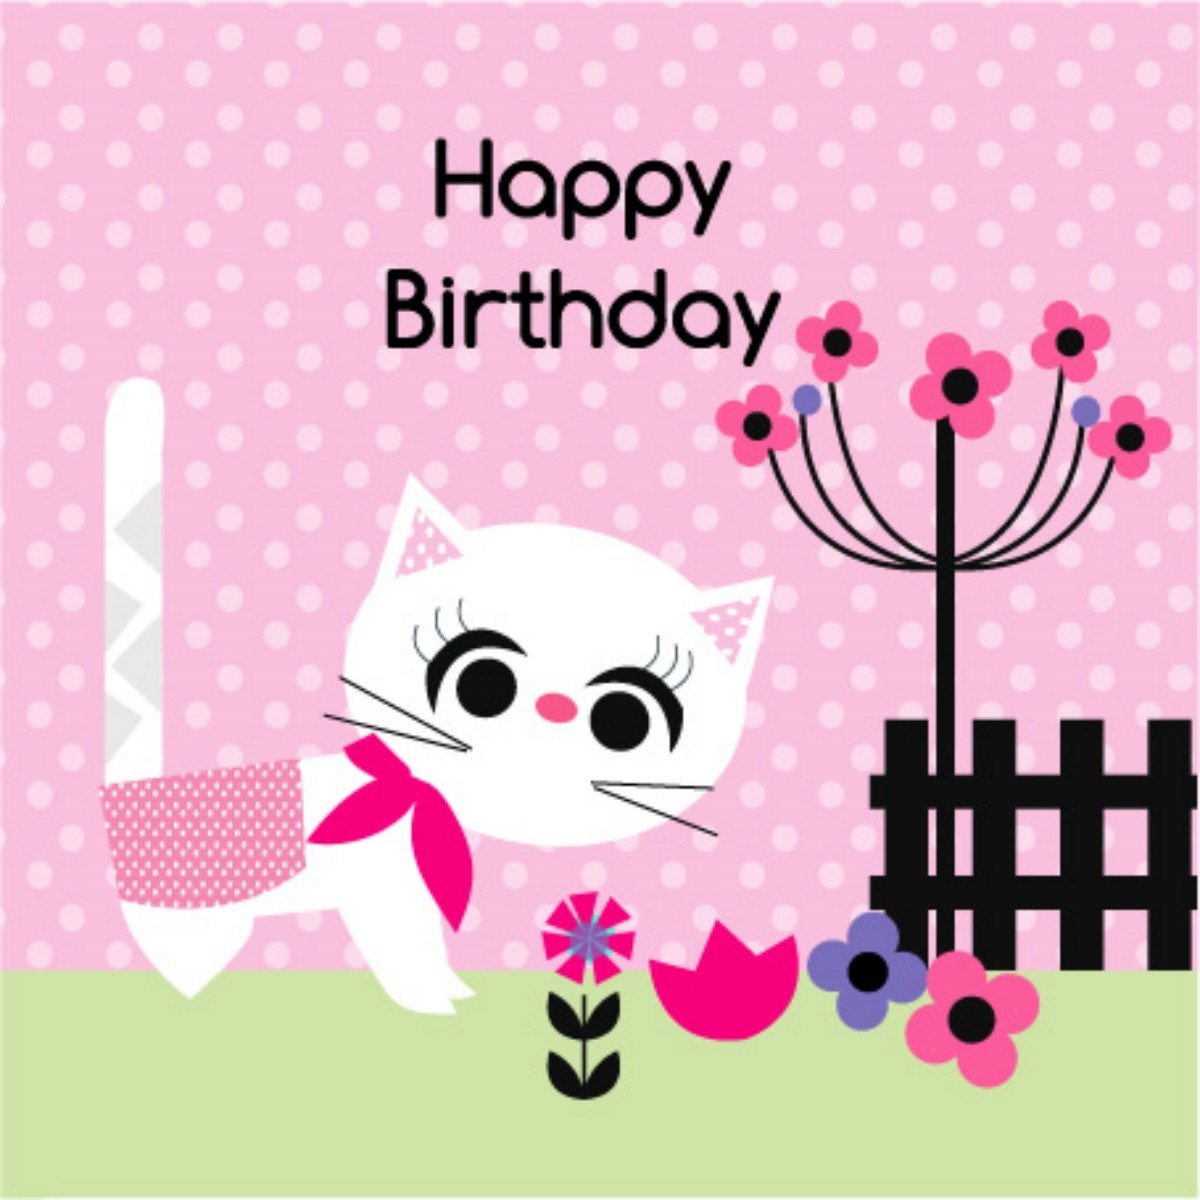 Greeting card greeting card uk birthday greeting cards bookmarktalkfo Image collections